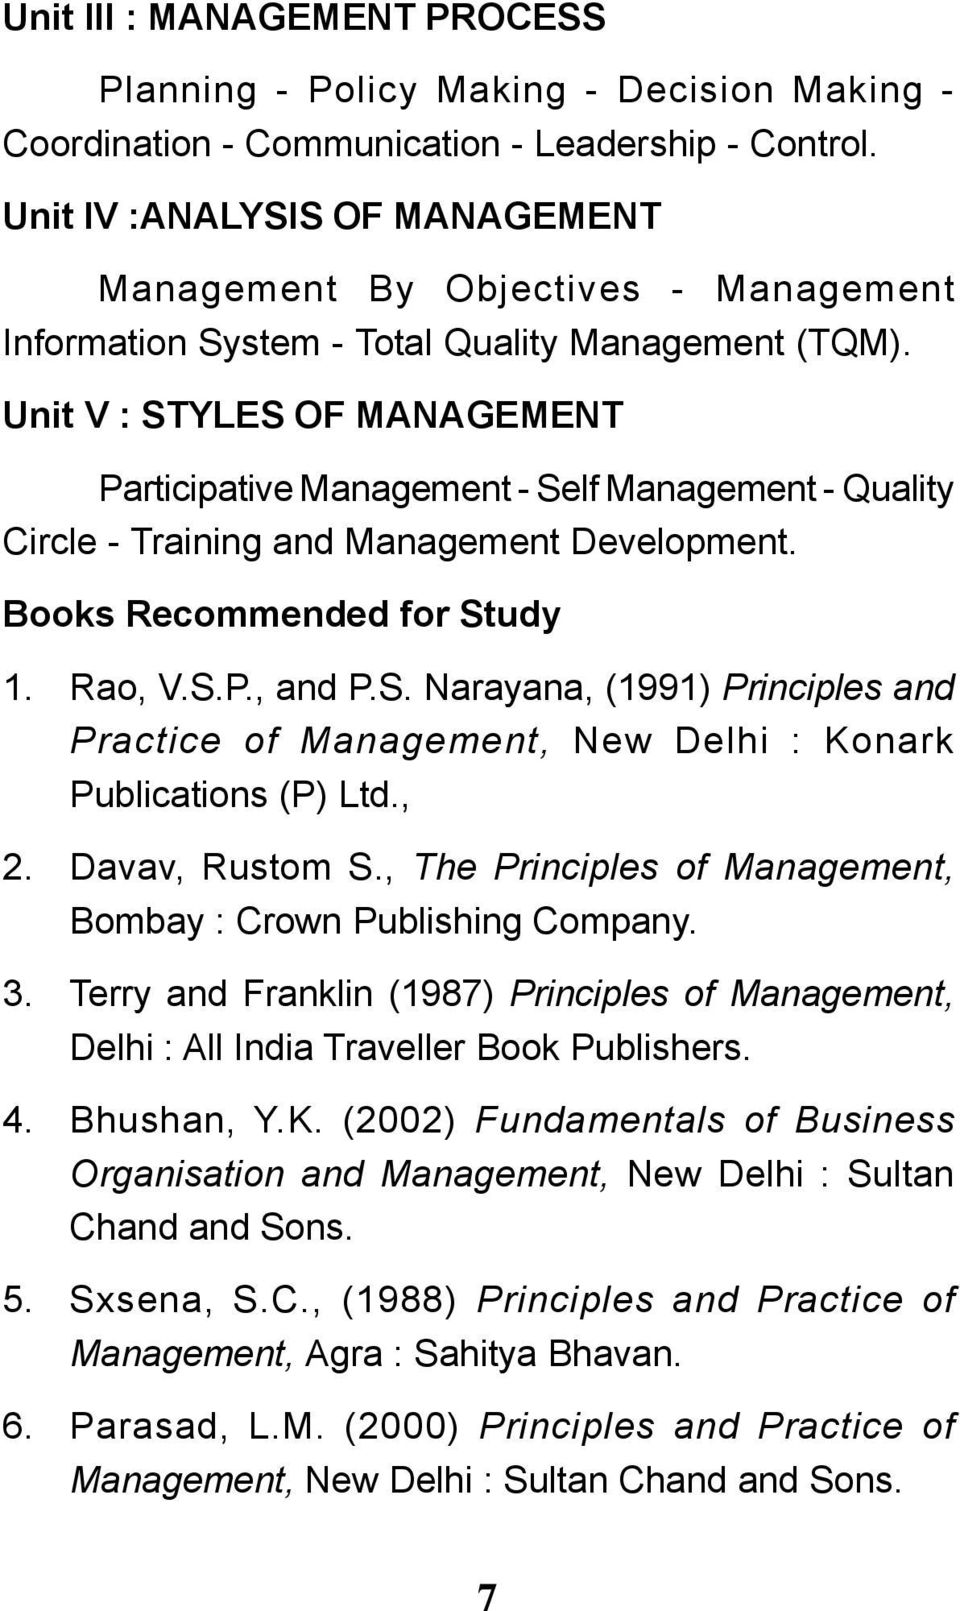 Unit V : STYLES OF MANAGEMENT Participative Management - Self Management - Quality Circle - Training and Management Development. Books Recommended for Study 1. Rao, V.S.P., and P.S. Narayana, (1991) Principles and Practice of Management, New Delhi : Konark Publications (P) Ltd.